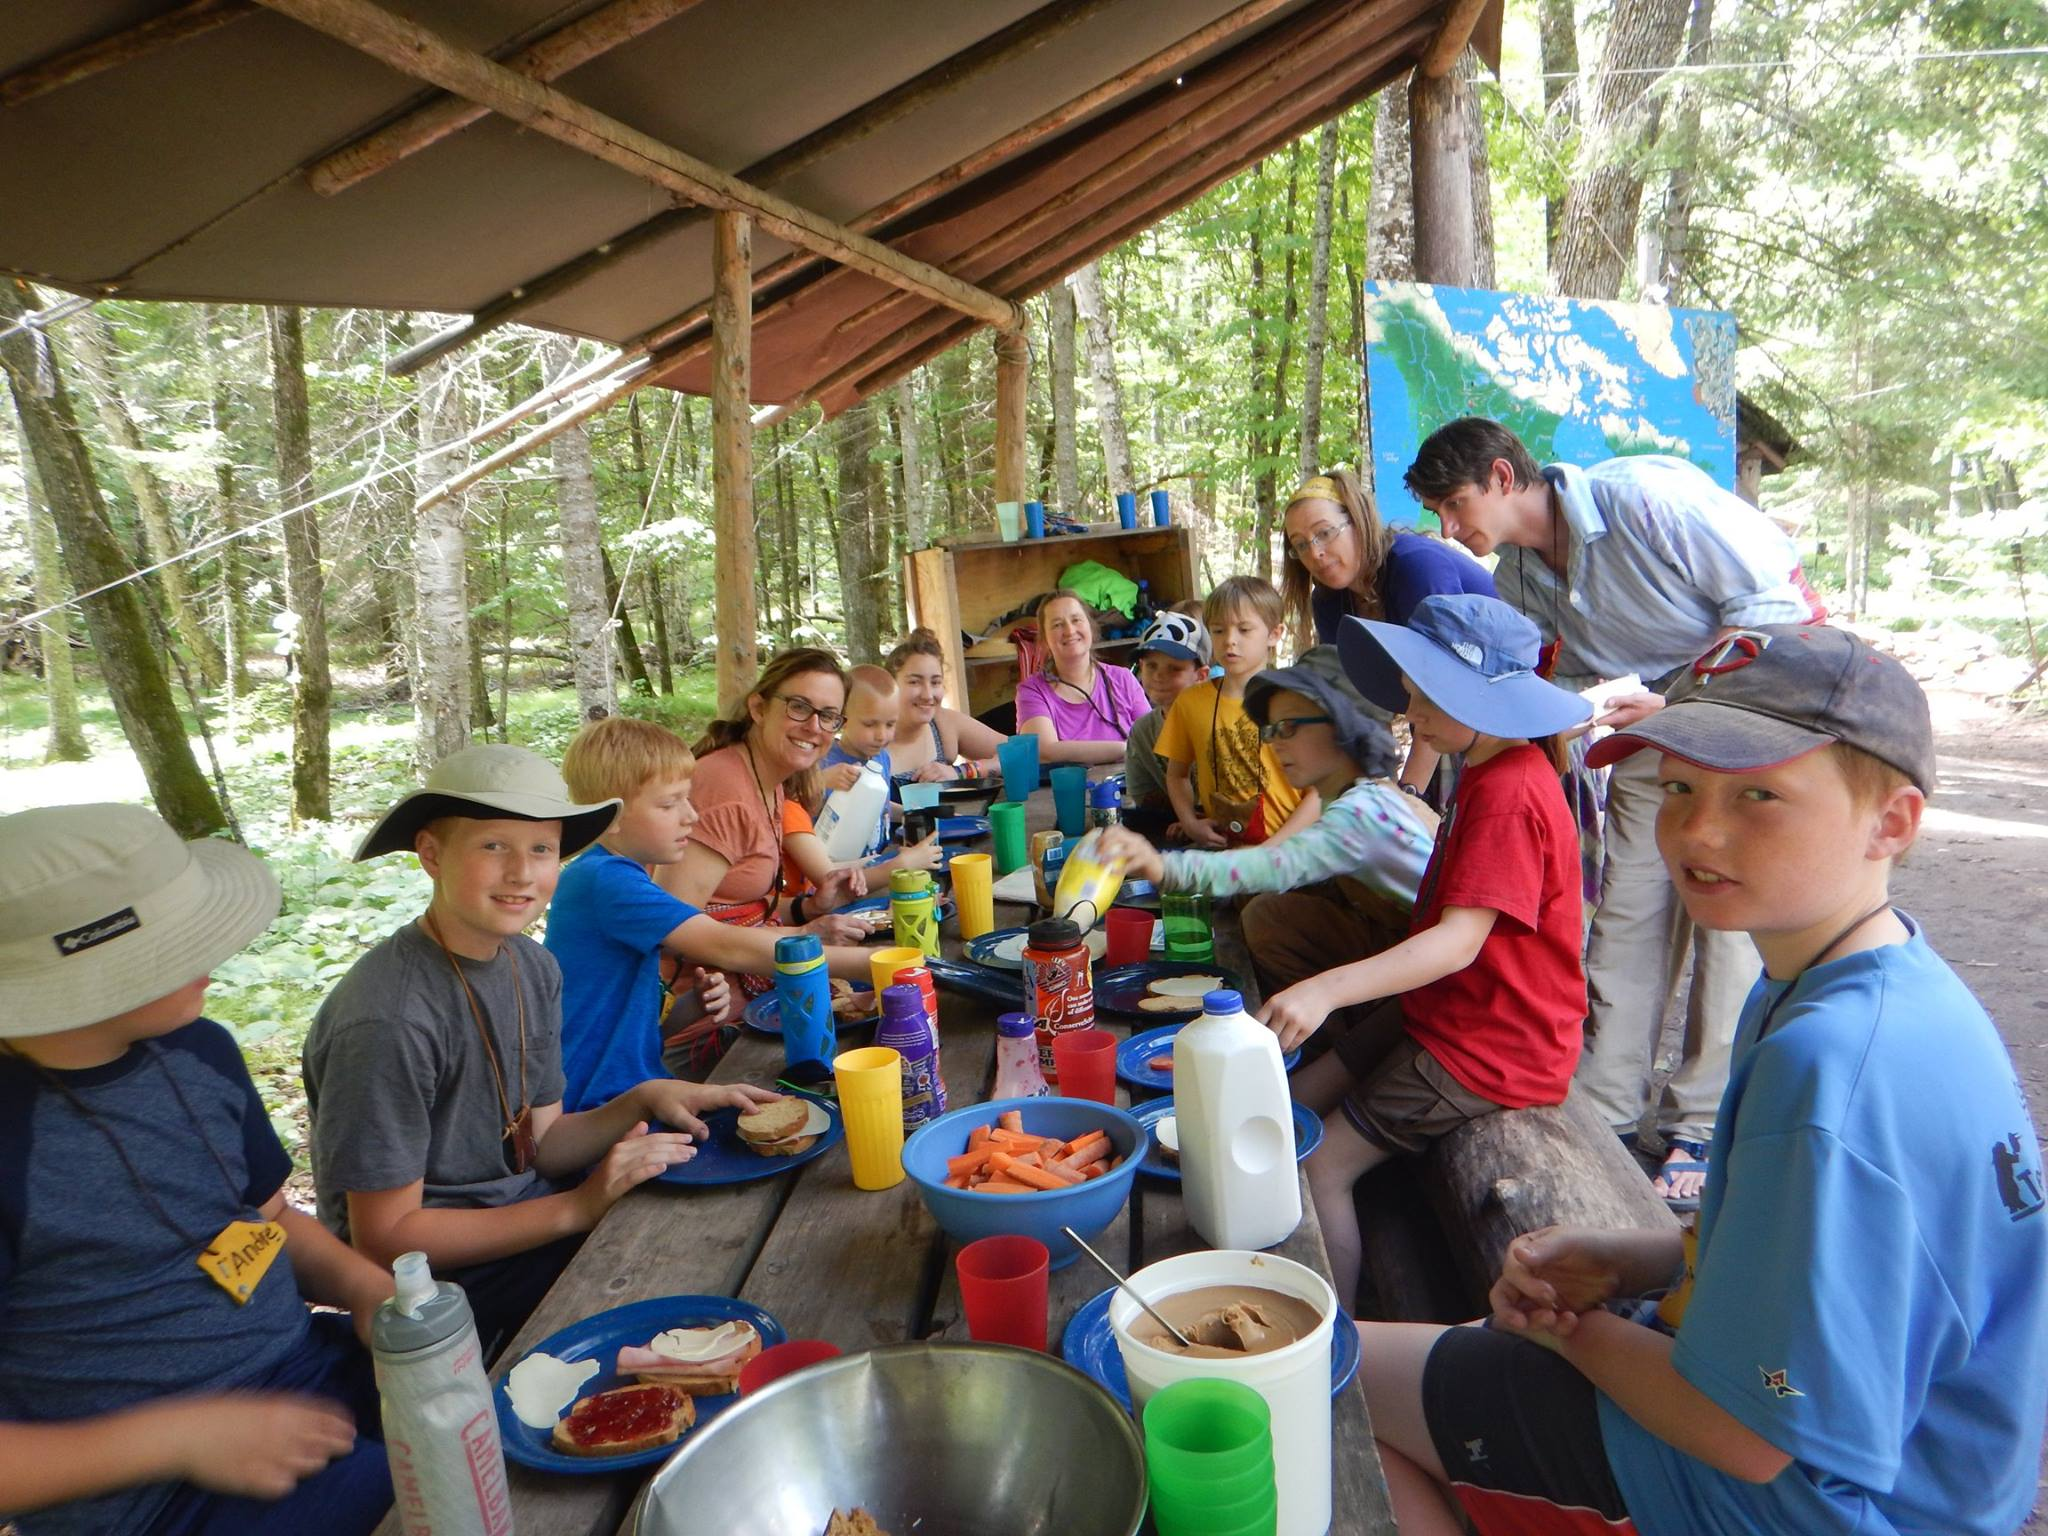 Boys enjoy a lunch in the woods, around a picnic table and under a canvas awning.